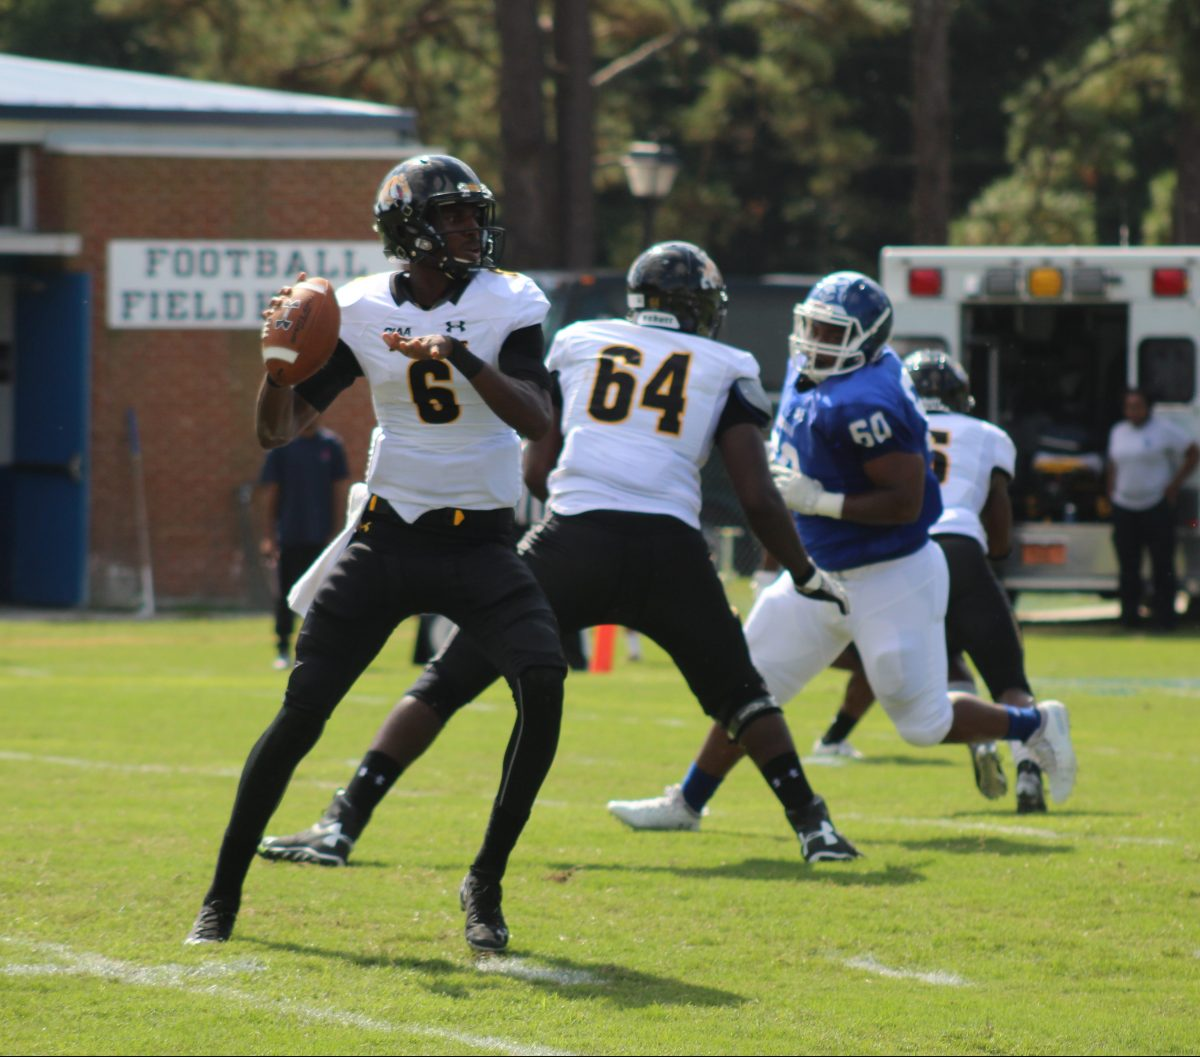 Bowie State Handles Virginia Union On The Road Hbcu Gameday